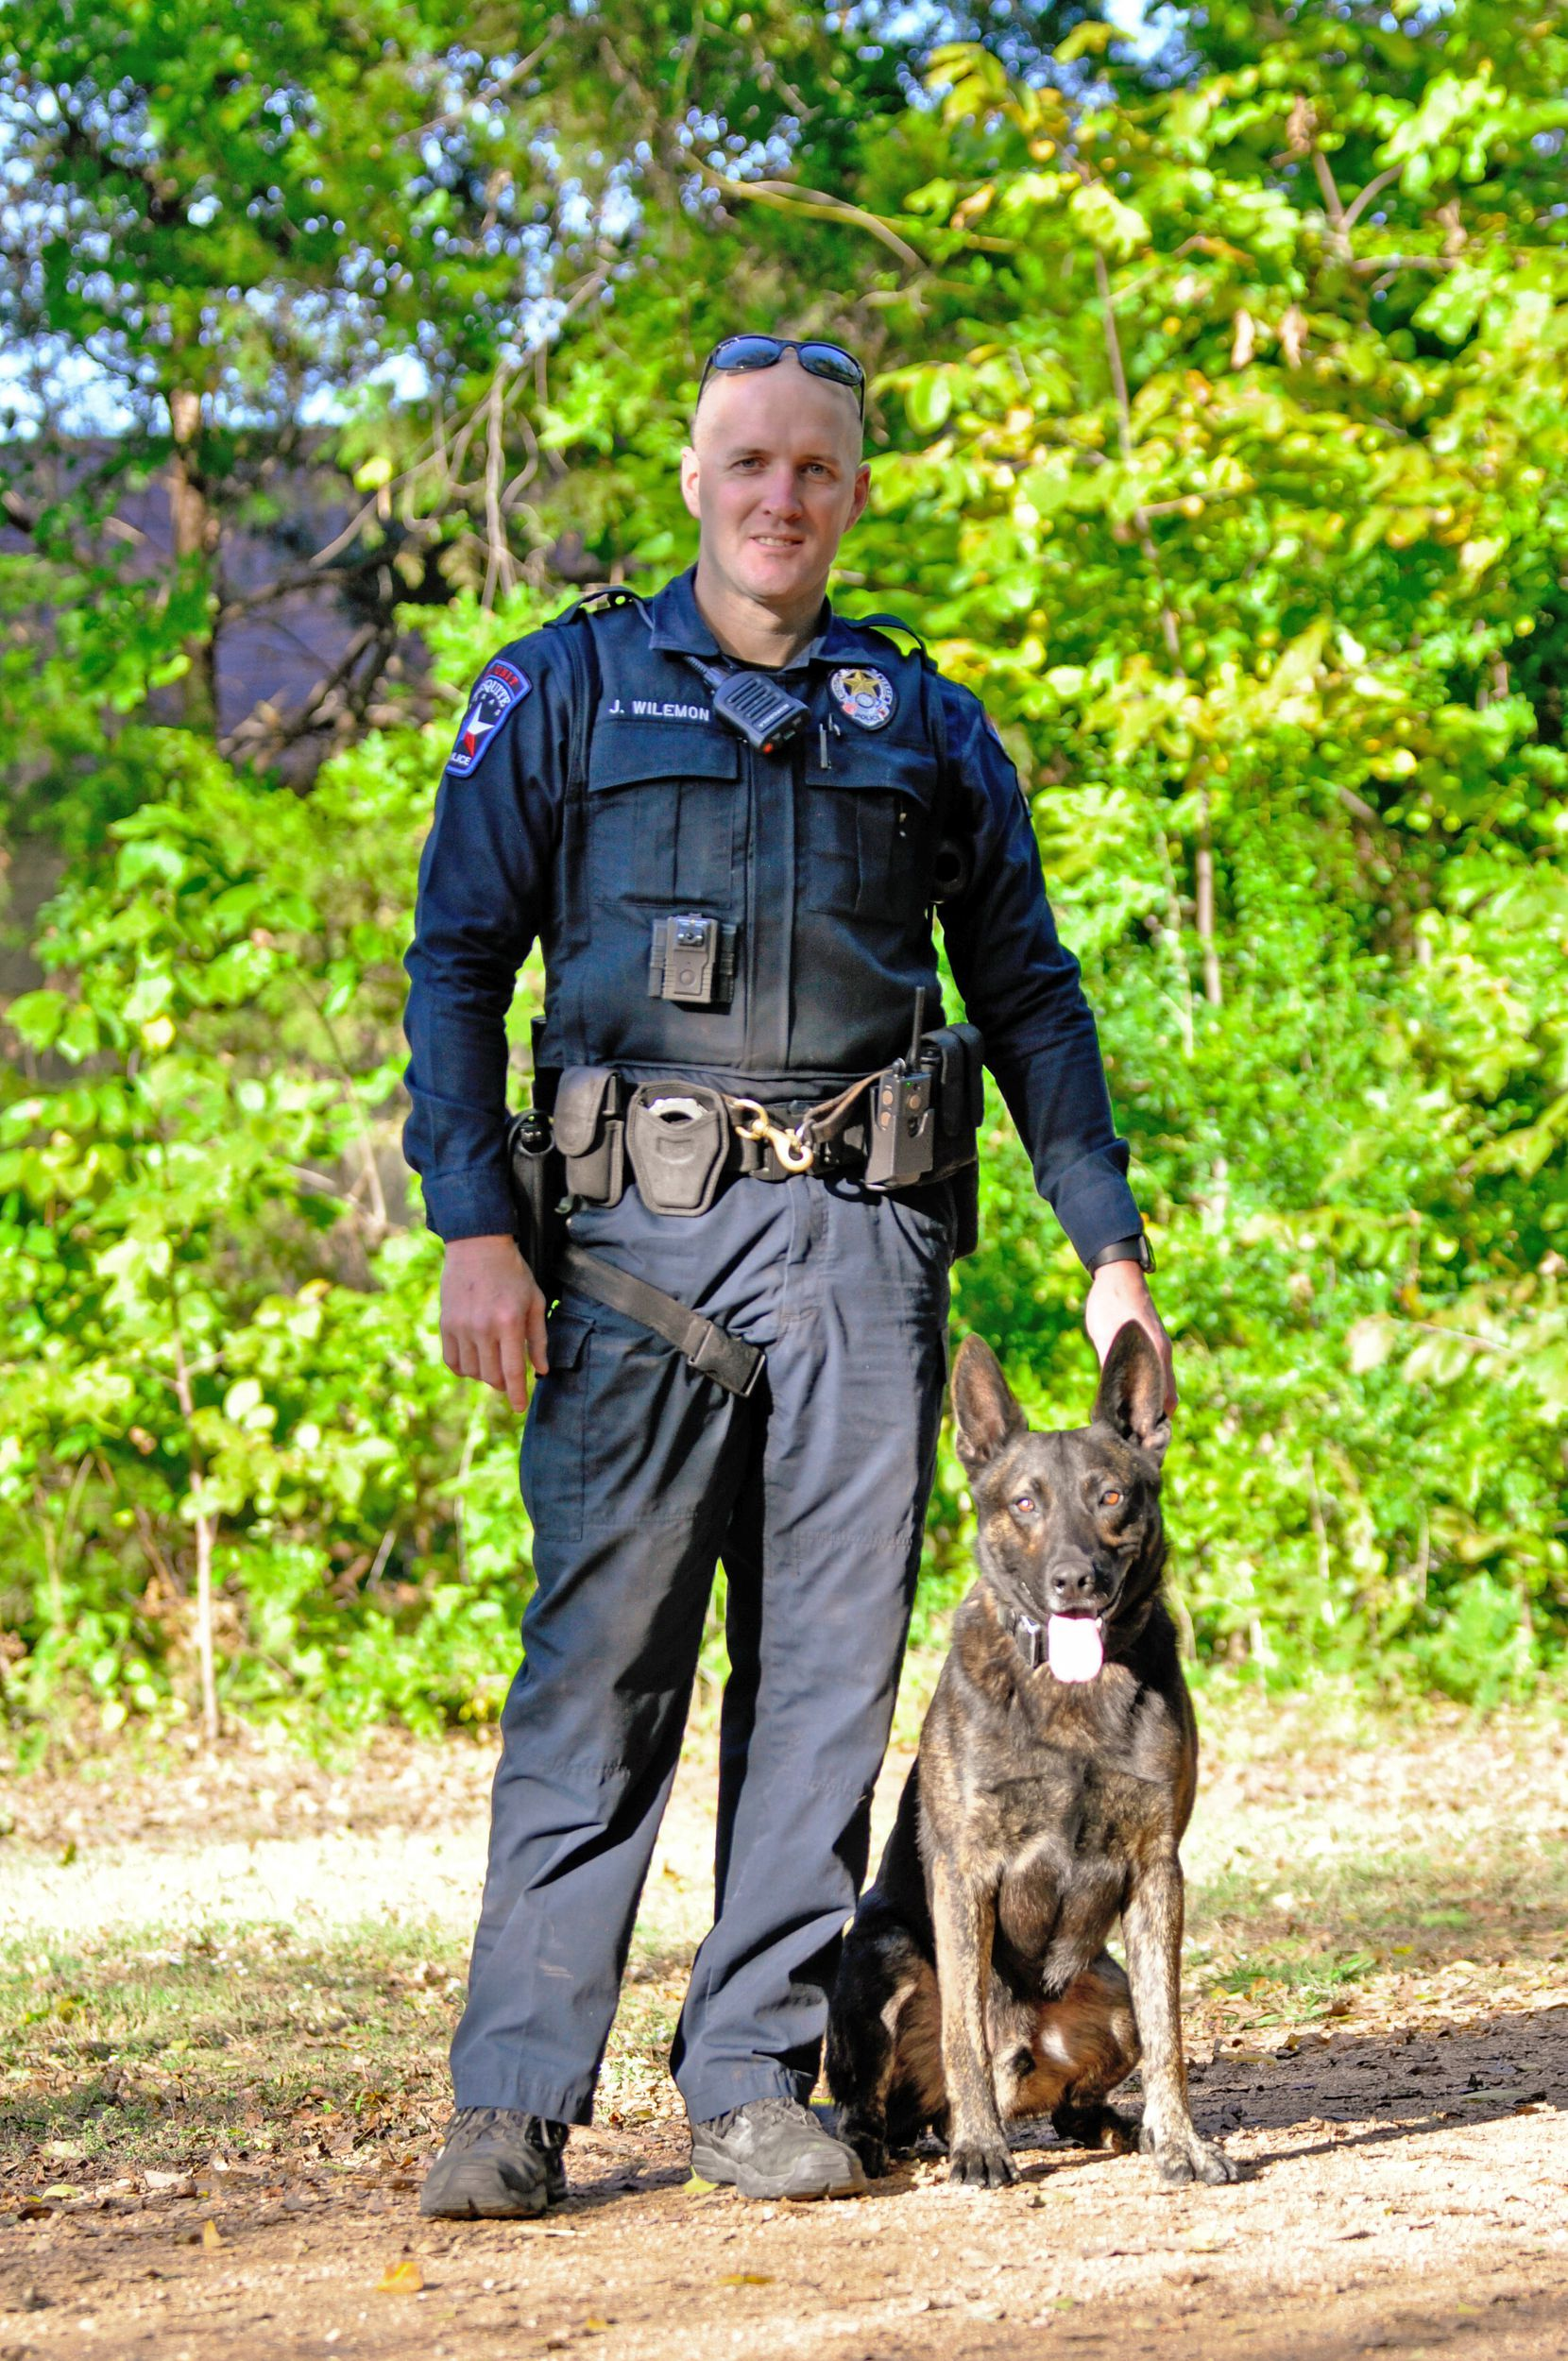 The Mesquite Police Department recognized Officer Jeremy Wilemon and K9 Axel in November 2020.